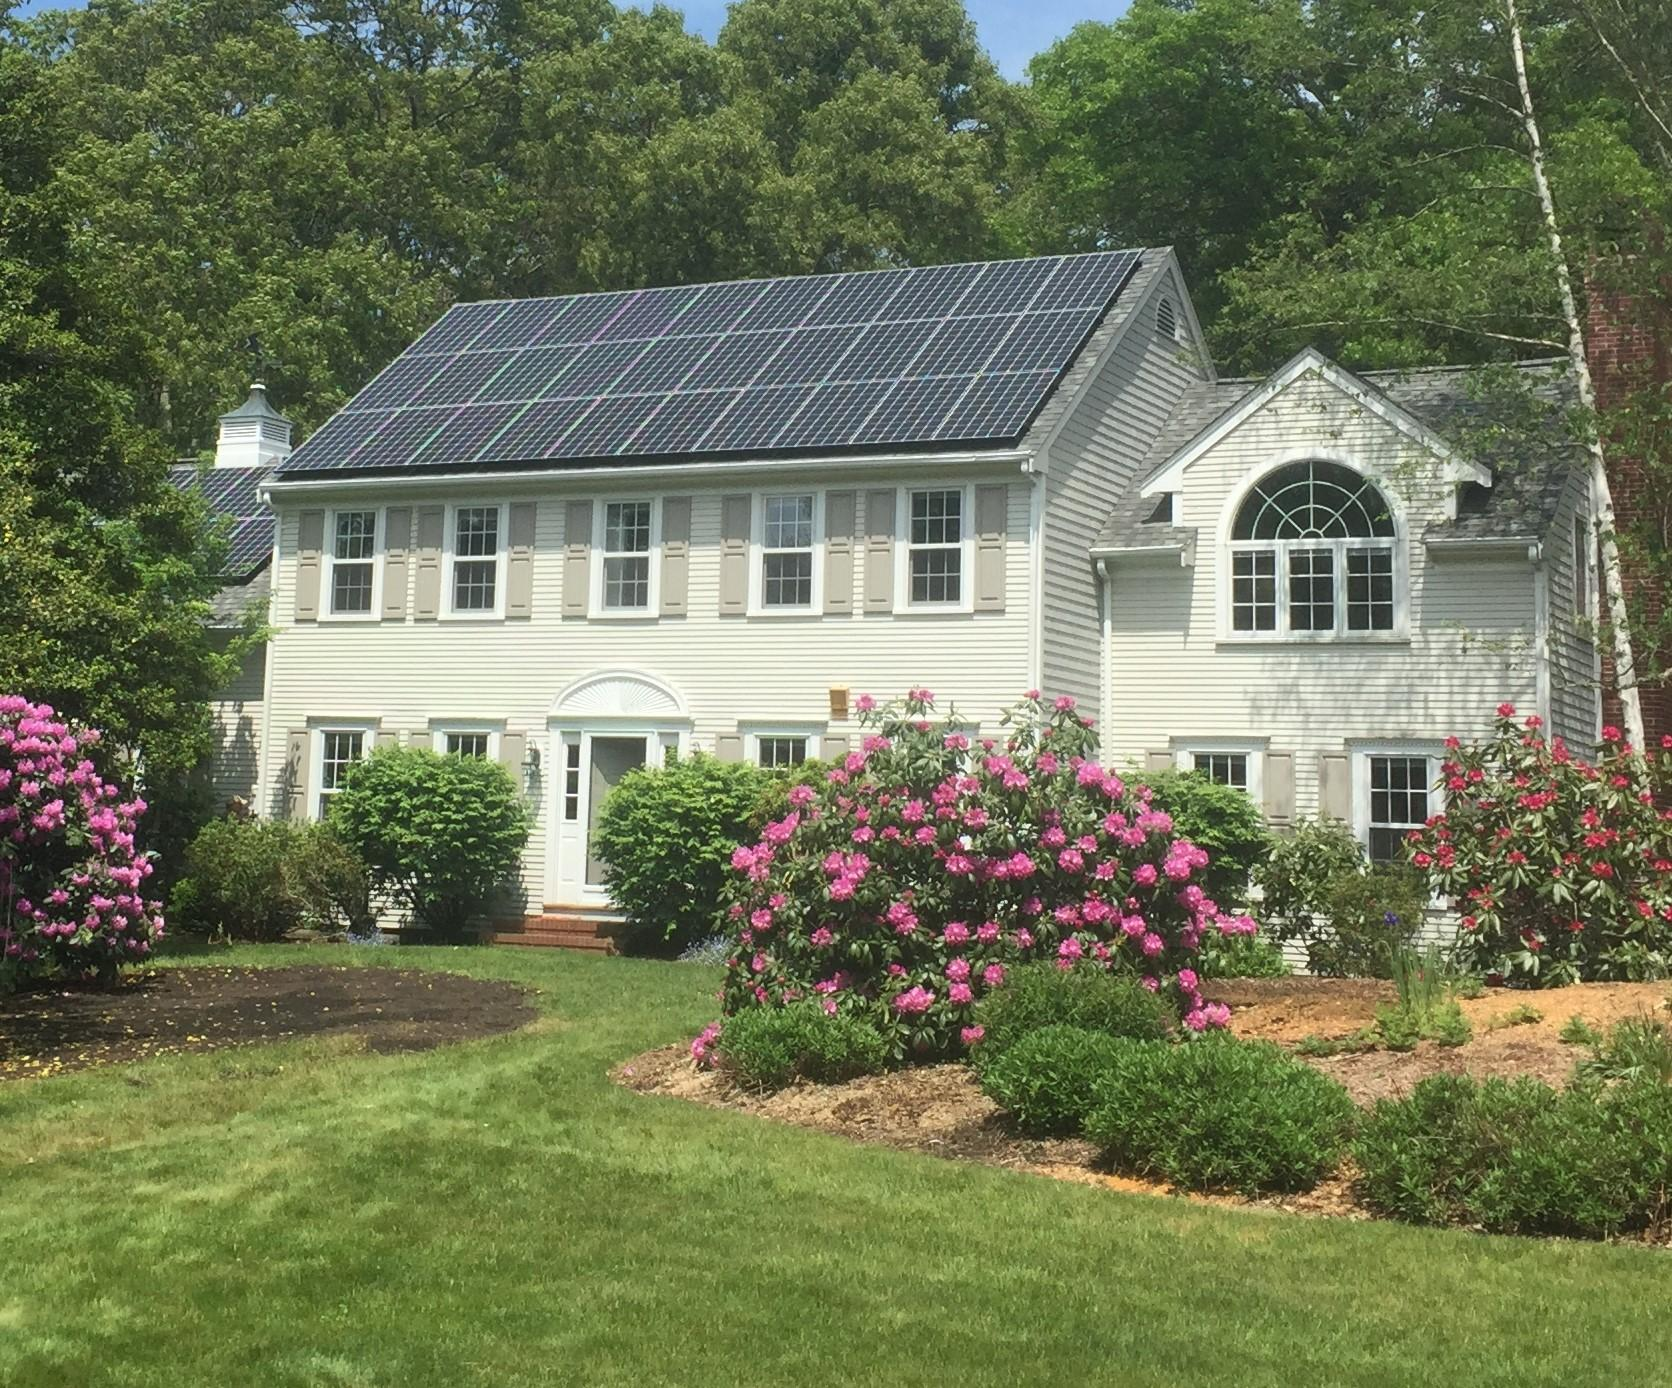 Solar Rising LLC - Profile & Reviews 2019 | EnergySage